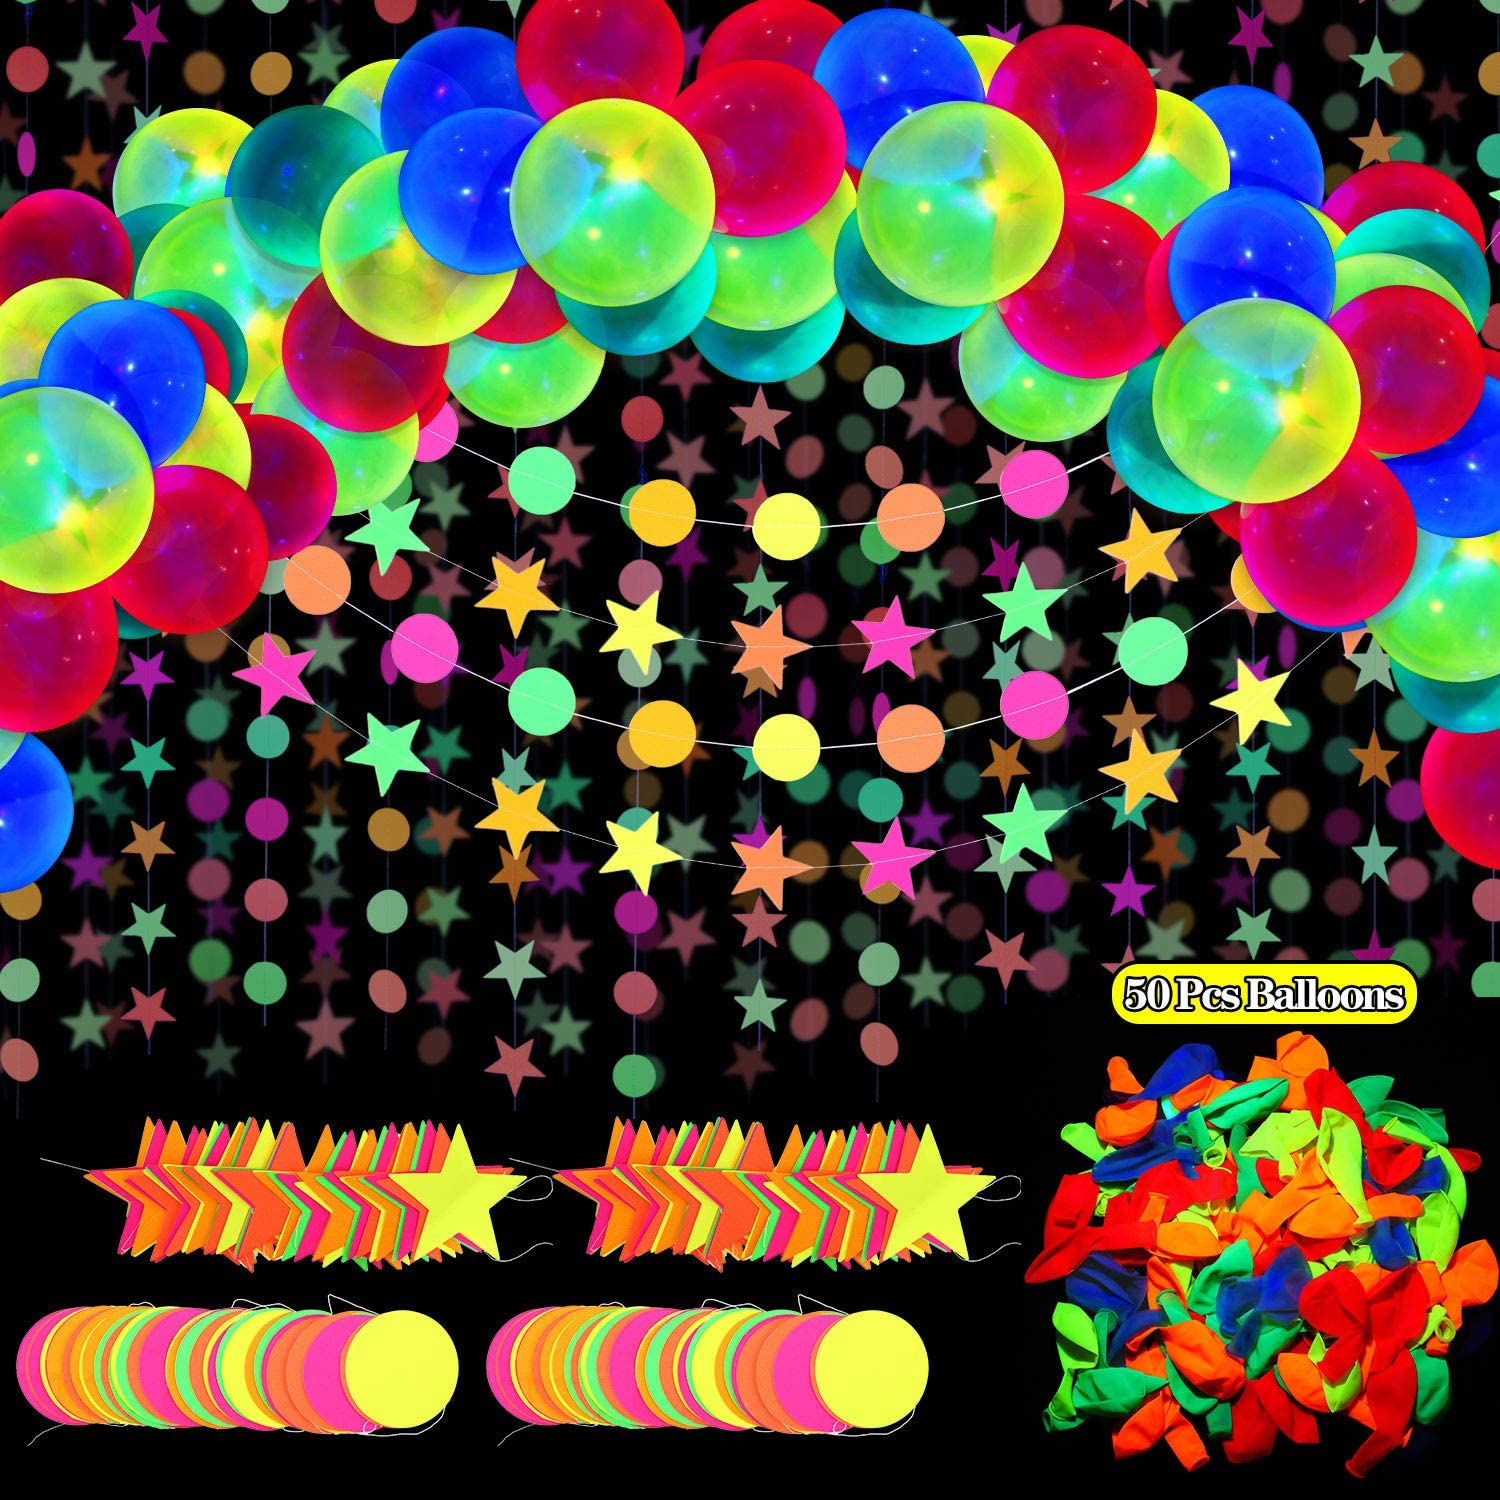 Amazon Com 54 Pieces Glow Neon Party Supplies Decorations Includes 10 Inches Neon Fluorescent Blacklight Birthday Balloons 57 8 Feet Black Light Star Circle Dots Glow In The Dark Garland Banner Decorations Toys Games